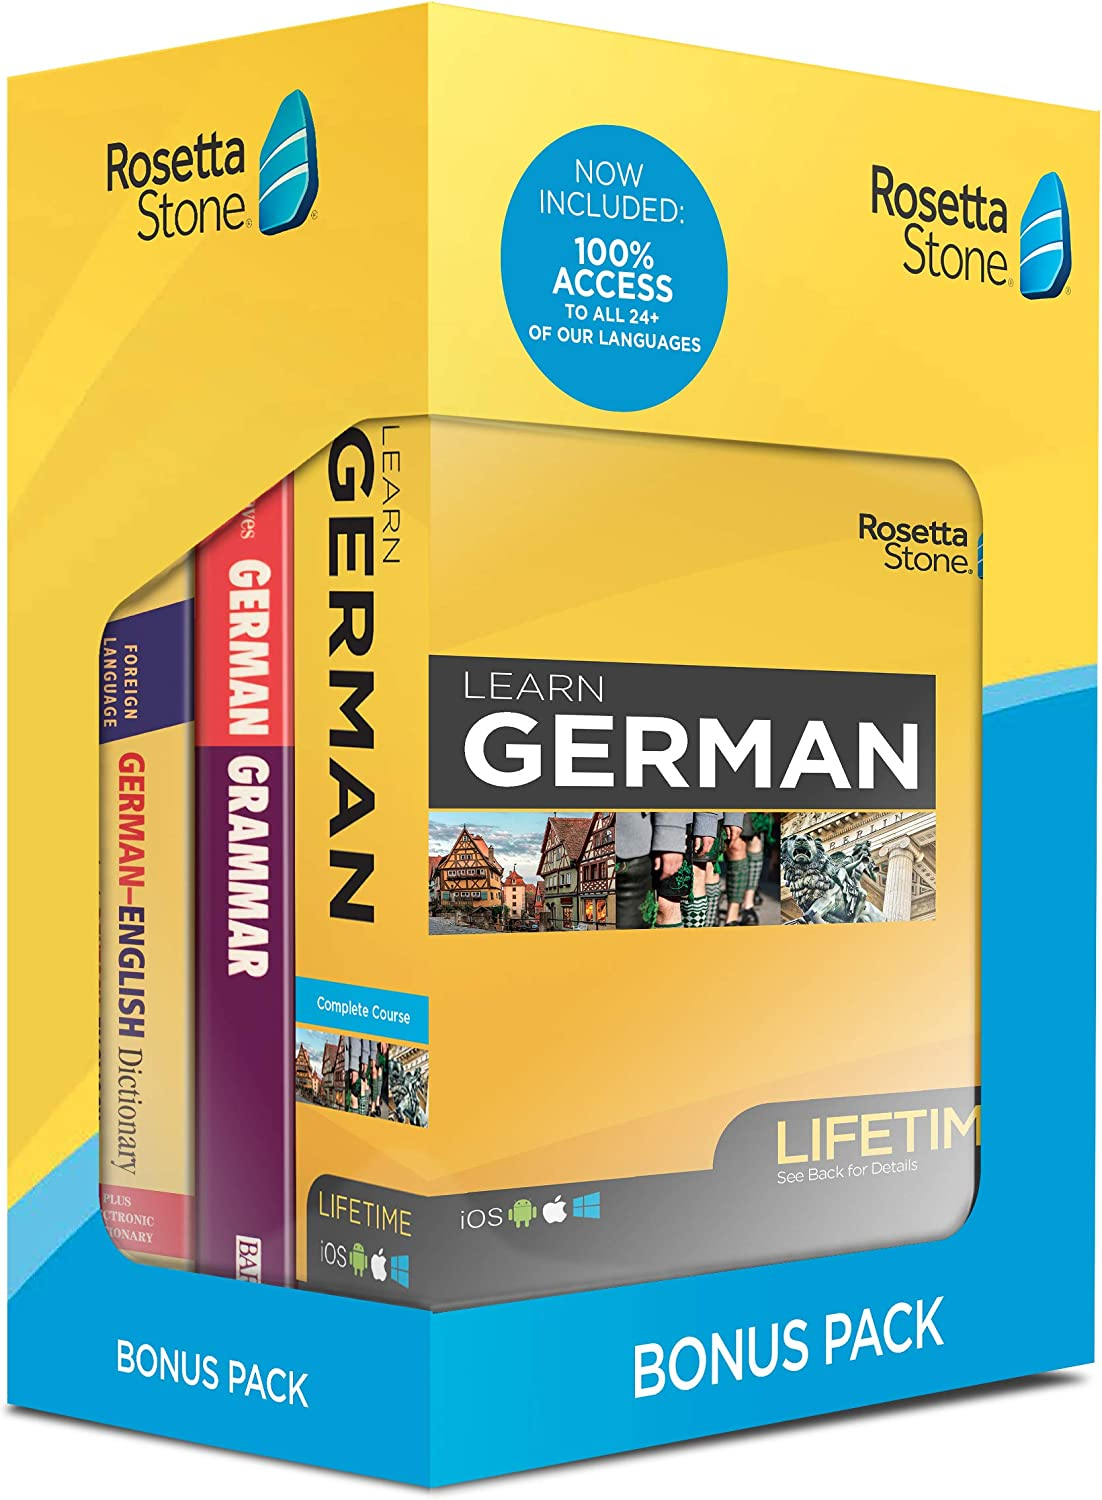 Rosetta Stone German Discount Coupon Code